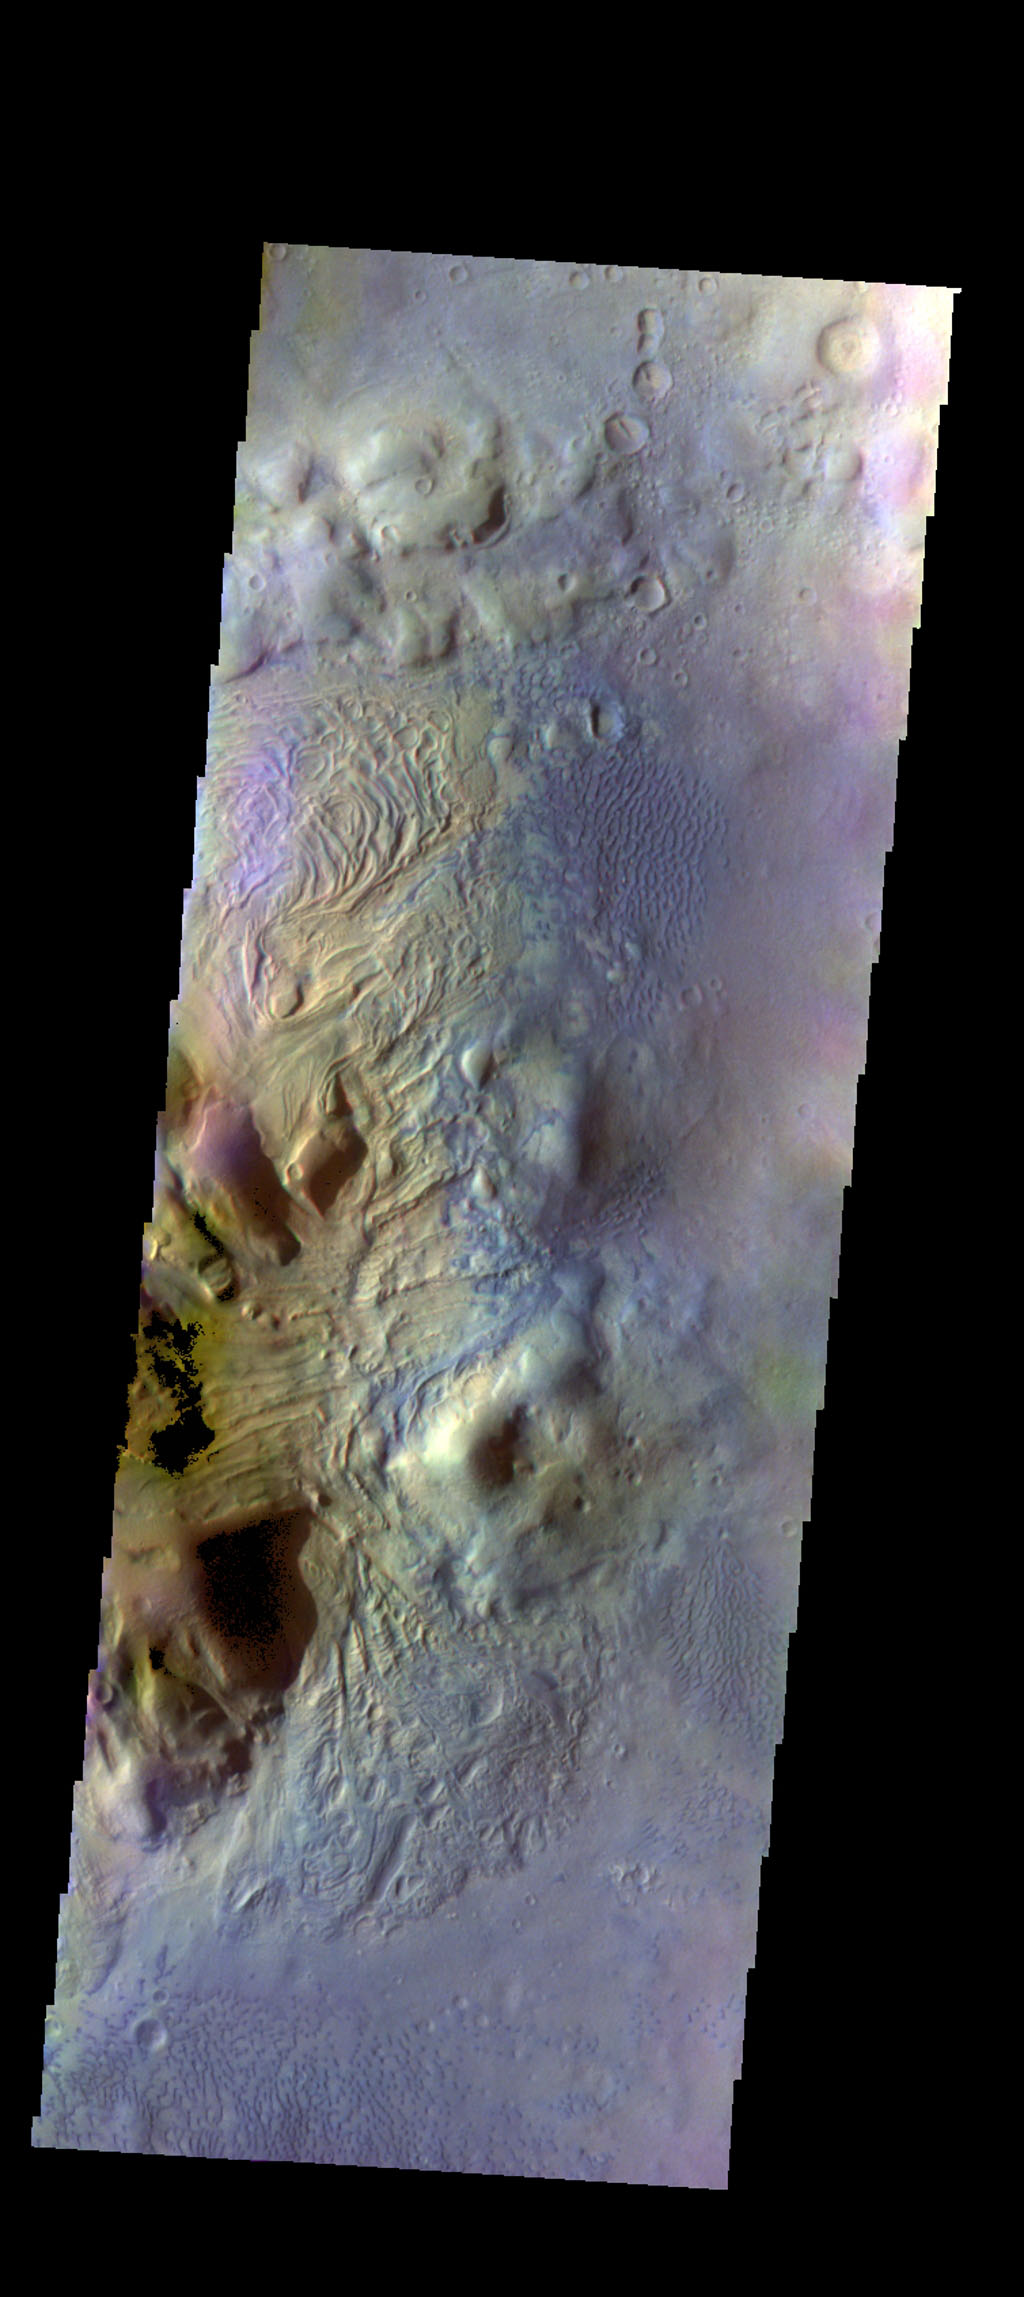 This image of Moreux Crater shows the eastern side of the central peak, as well as the nearby sand dunes. In this false color image from NASA's 2001 Mars Odyssey spacecraft sand dunes are 'blue'.